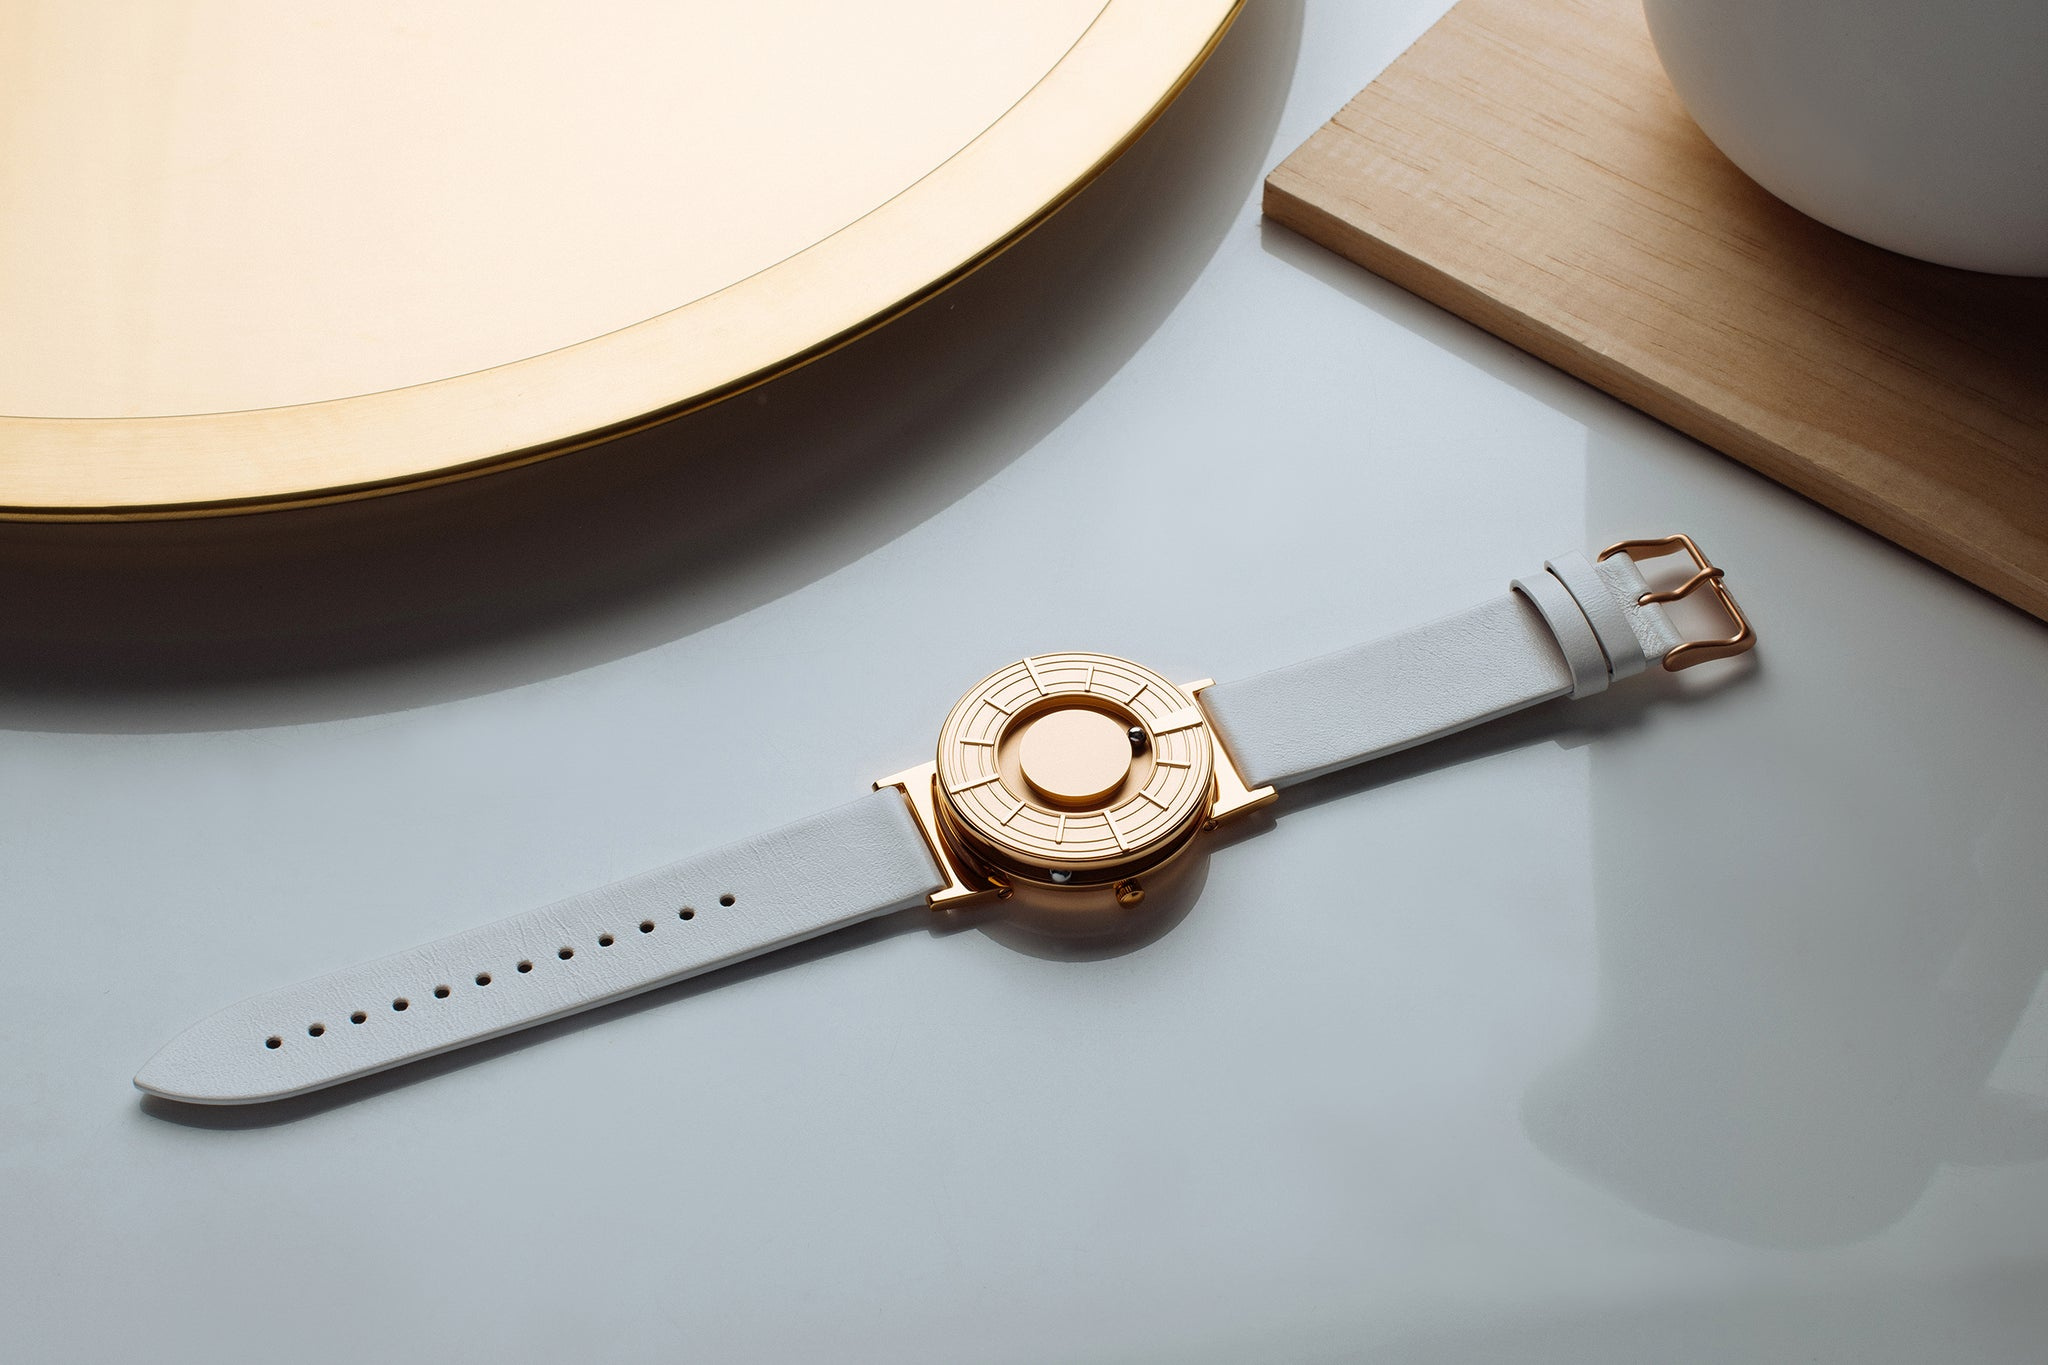 The Bradley Edge Rose Gold is flat on a white glossy surface. There is a round gold disk in the top left corner. There is a square gold object in the top right corner.